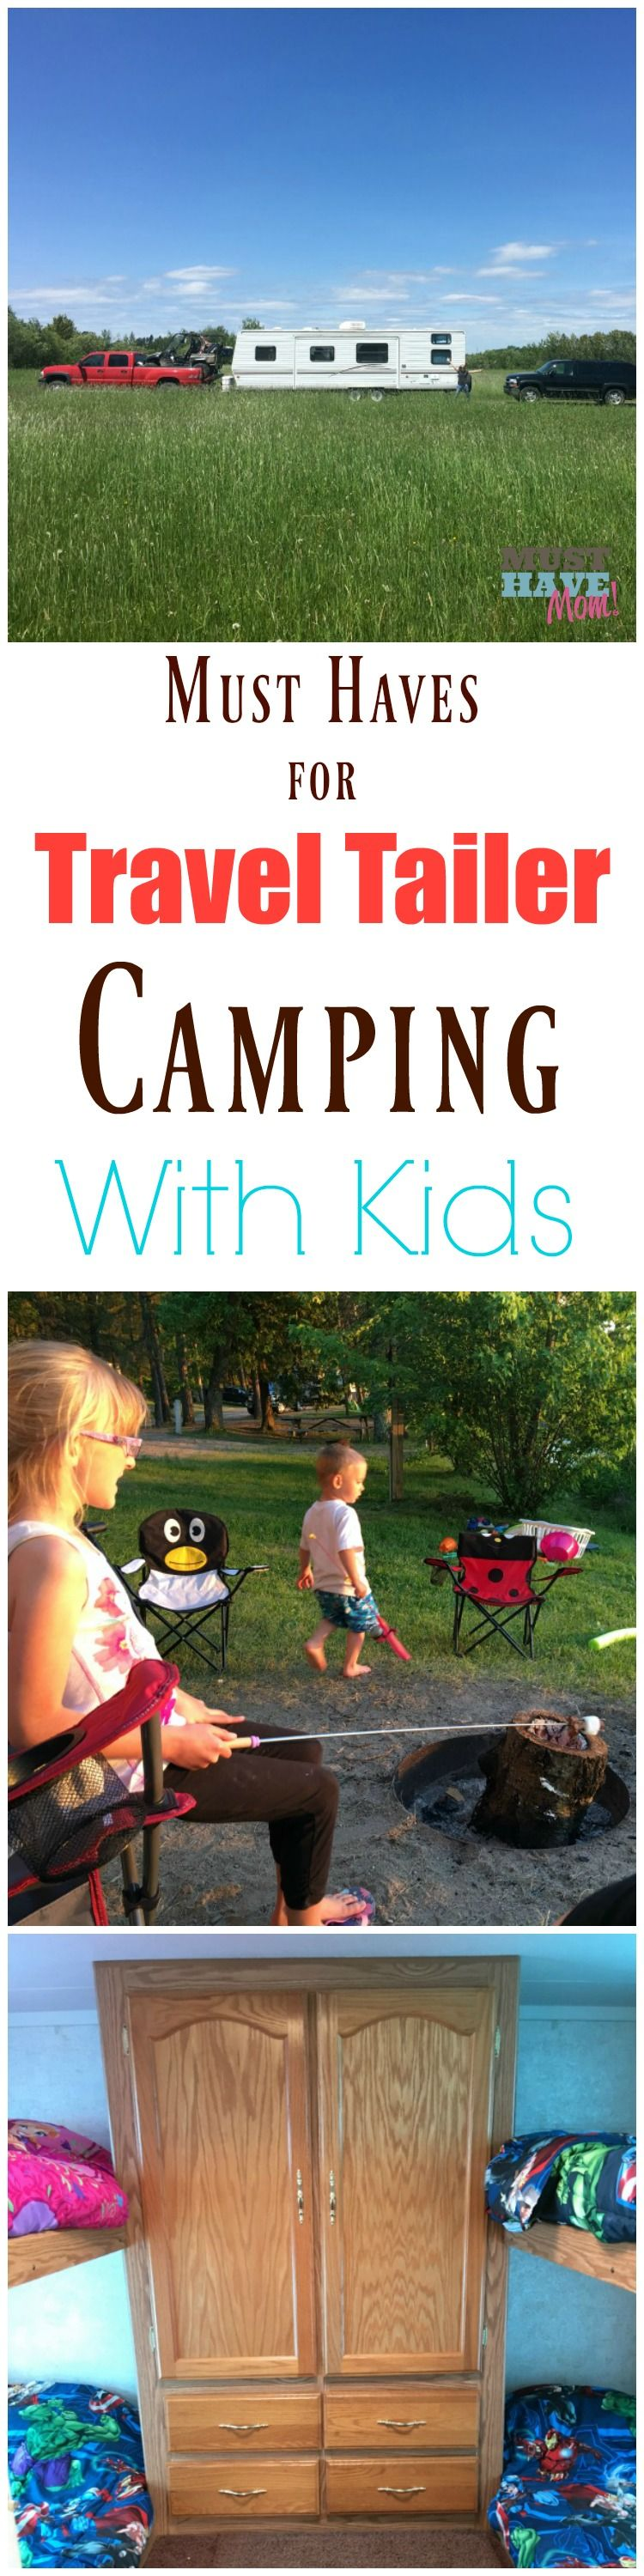 10 Must Haves for RV Travel Trailer Camping With Kids ...